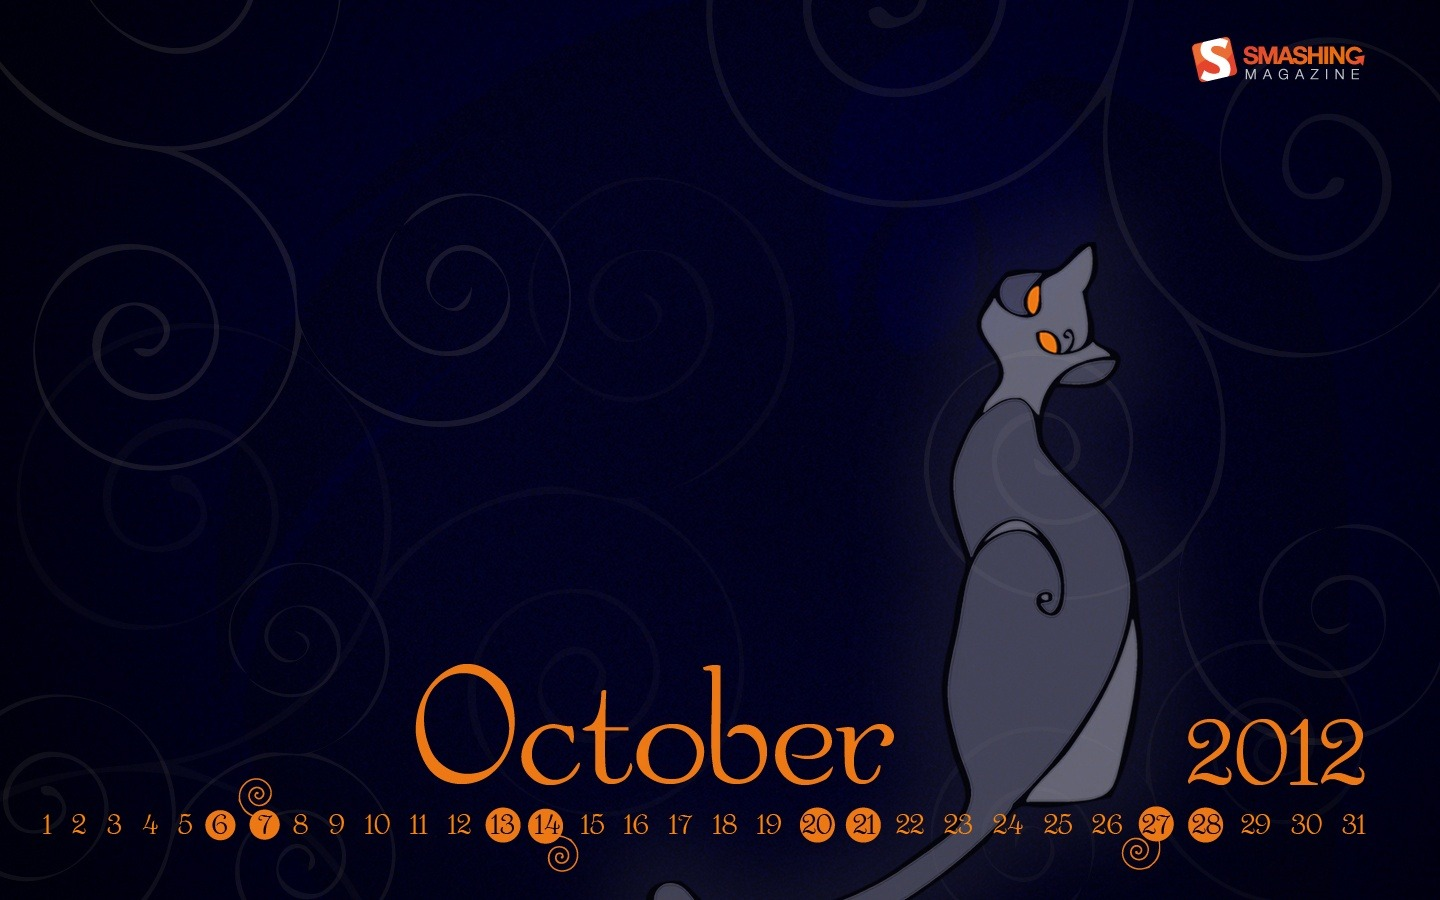 In January Calendar Wallpaper 31964